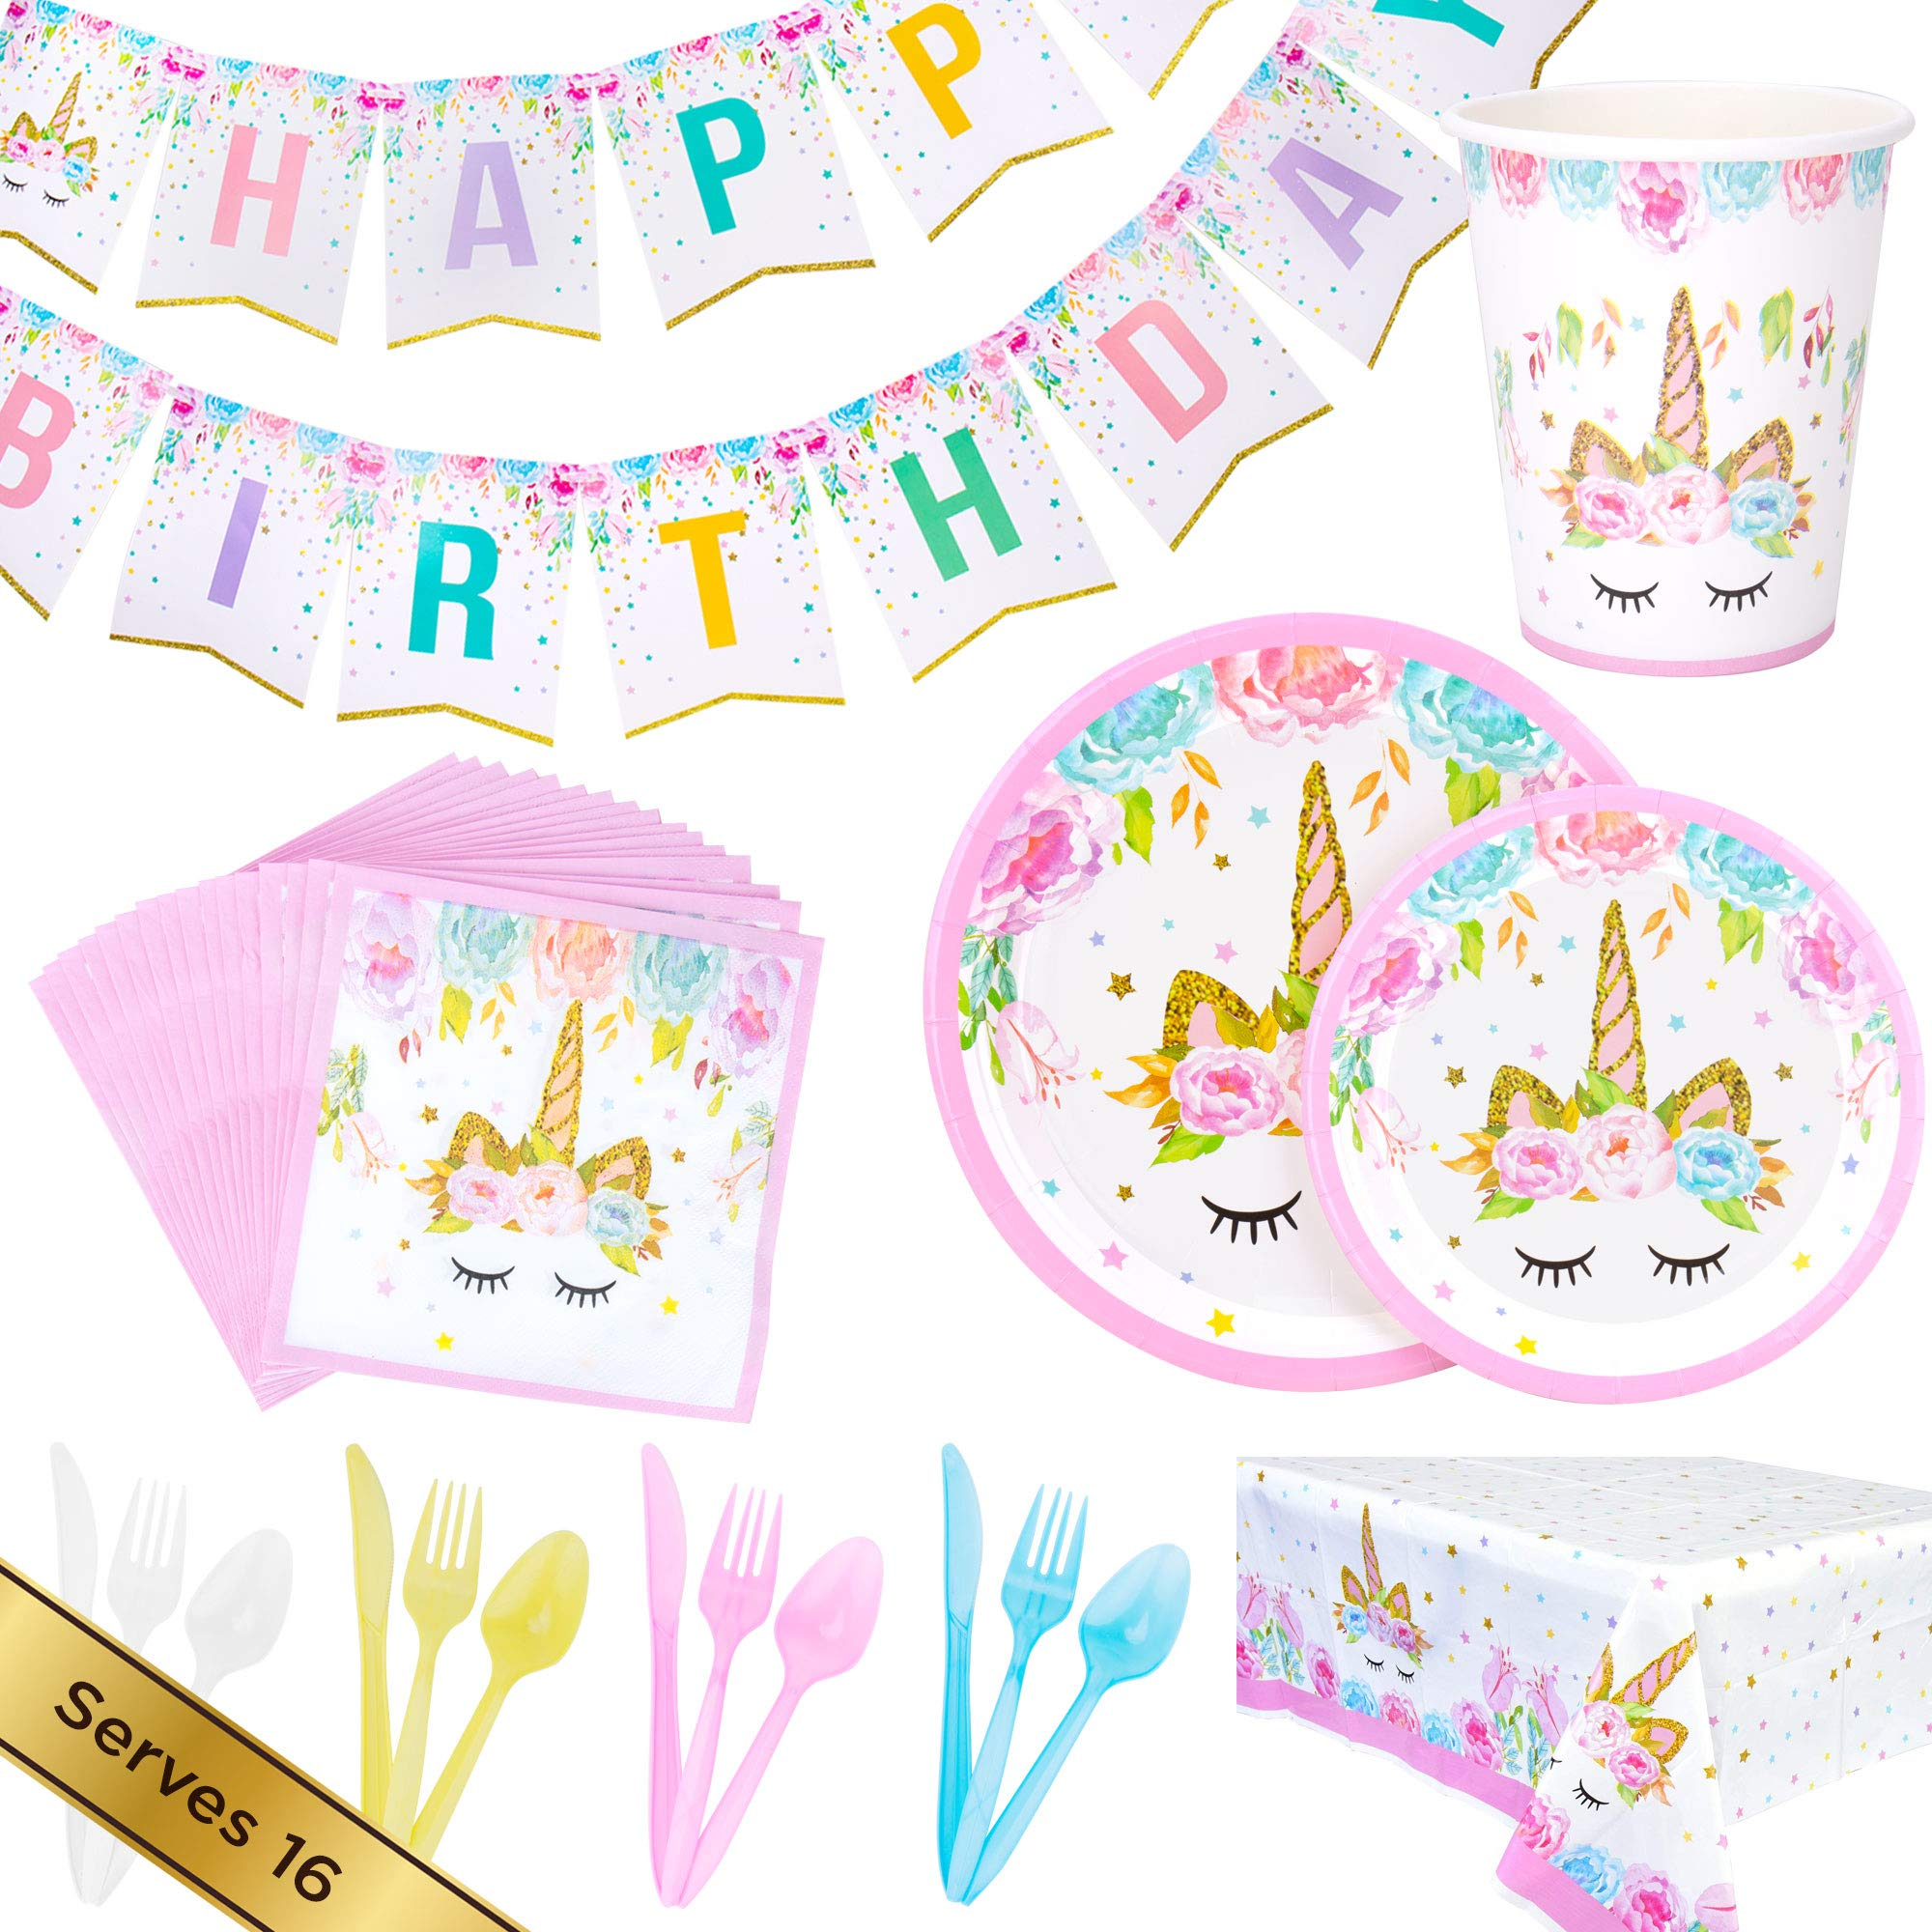 Details About Unicorn Birthday Party Supplies Set For Girls Gorgeous Pink Gold Plates Cups